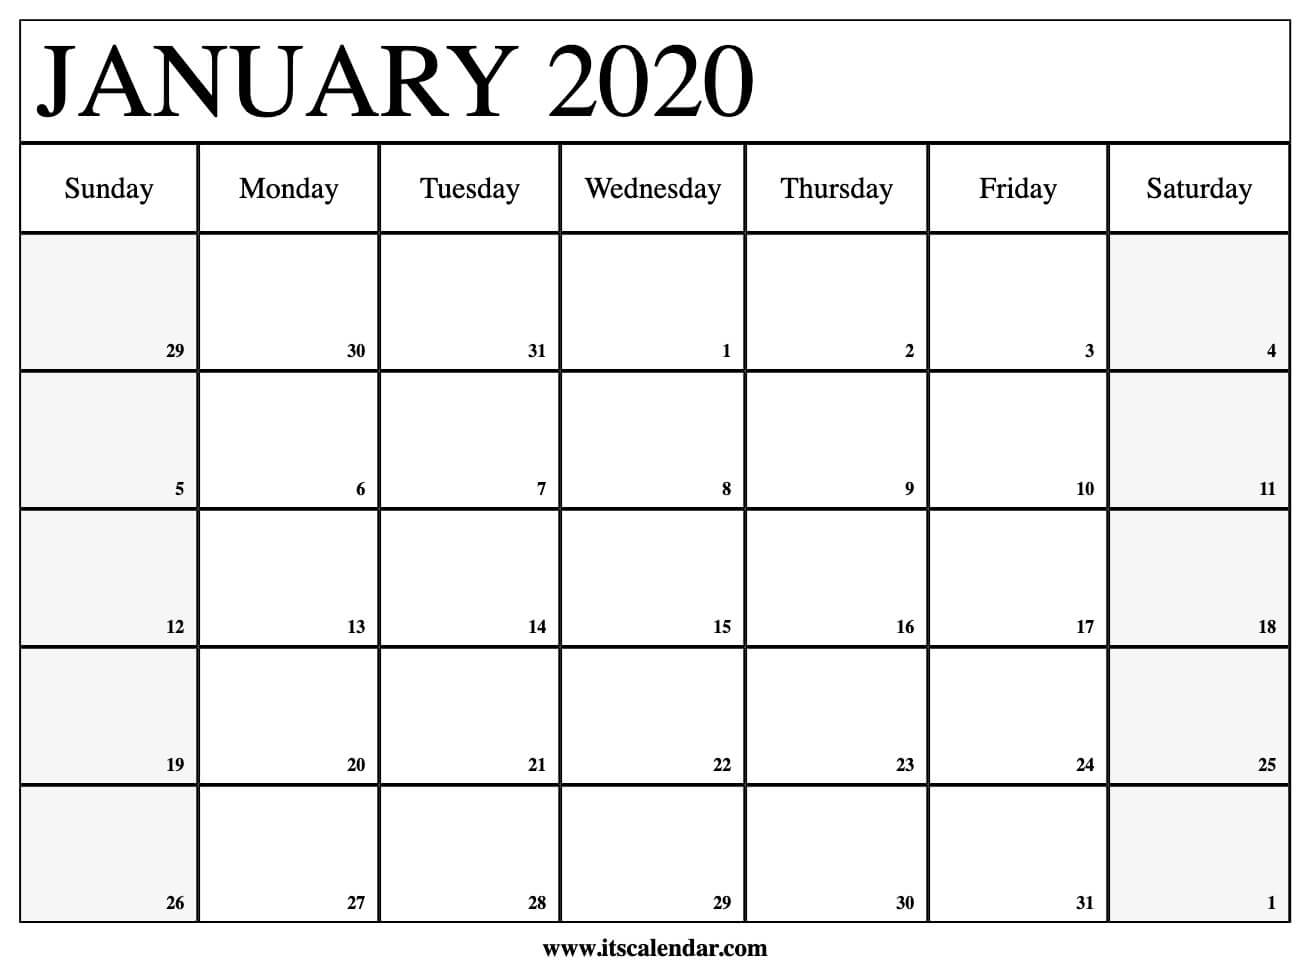 Free Printable Calendar 2020 Bill Paying Monthly | Example ...  |Monthly Callender January 2020